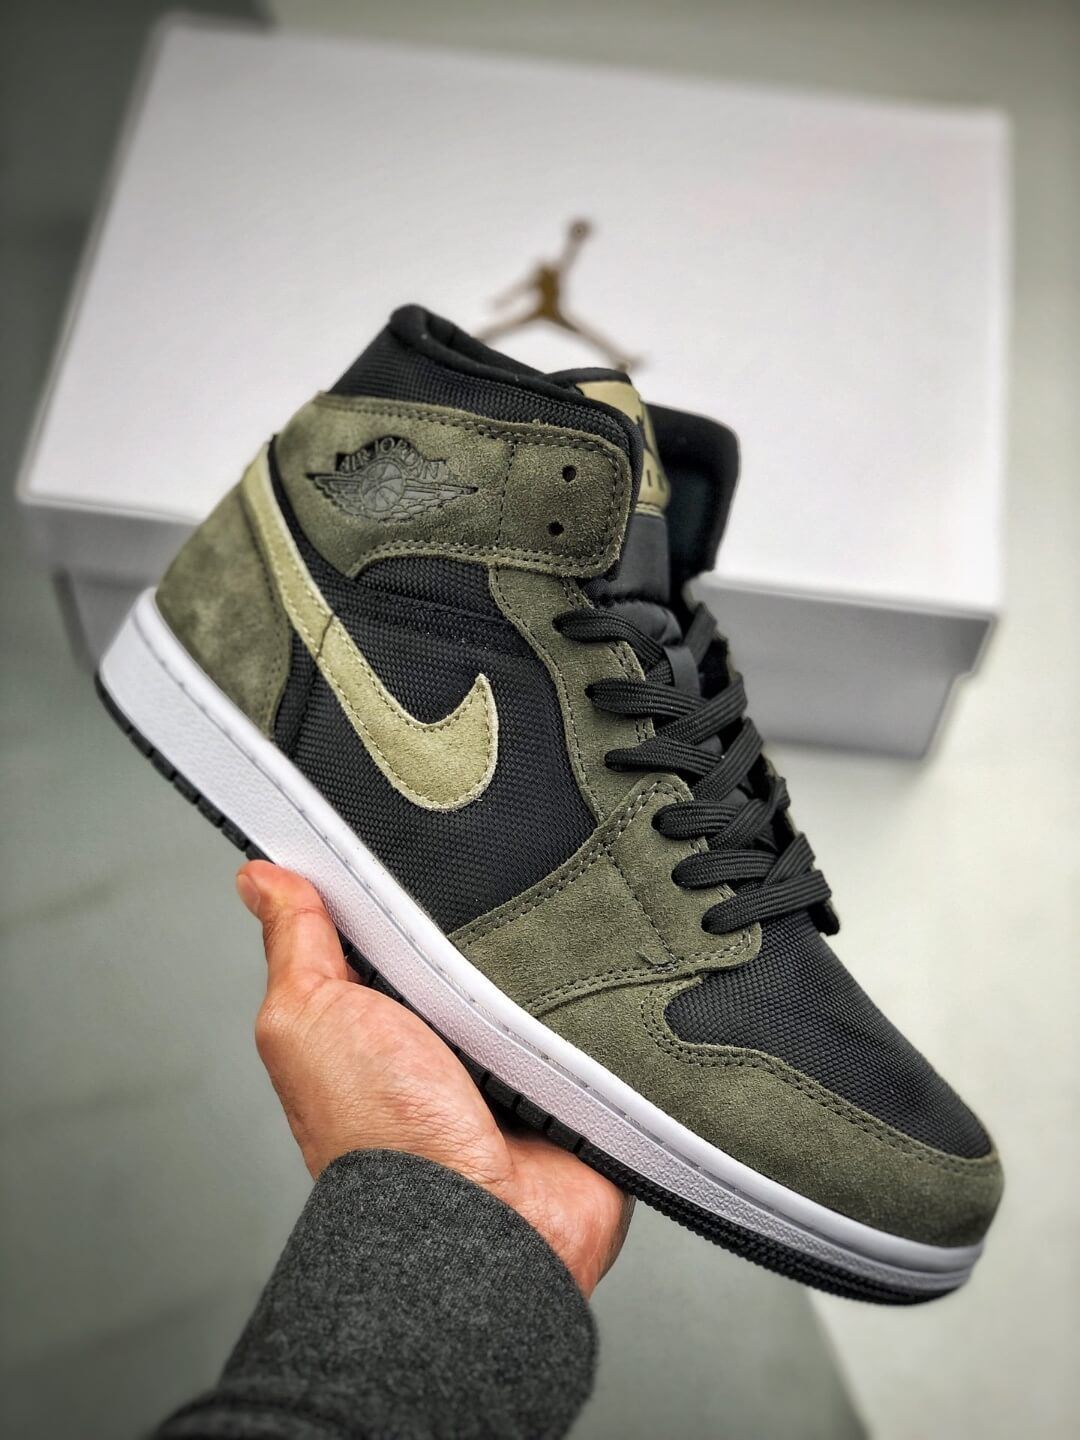 The Nike Wmns Air Jordan 1 Mid Olive Black Mesh Underlay Olive Tan Suede Overlay Repshoes 01